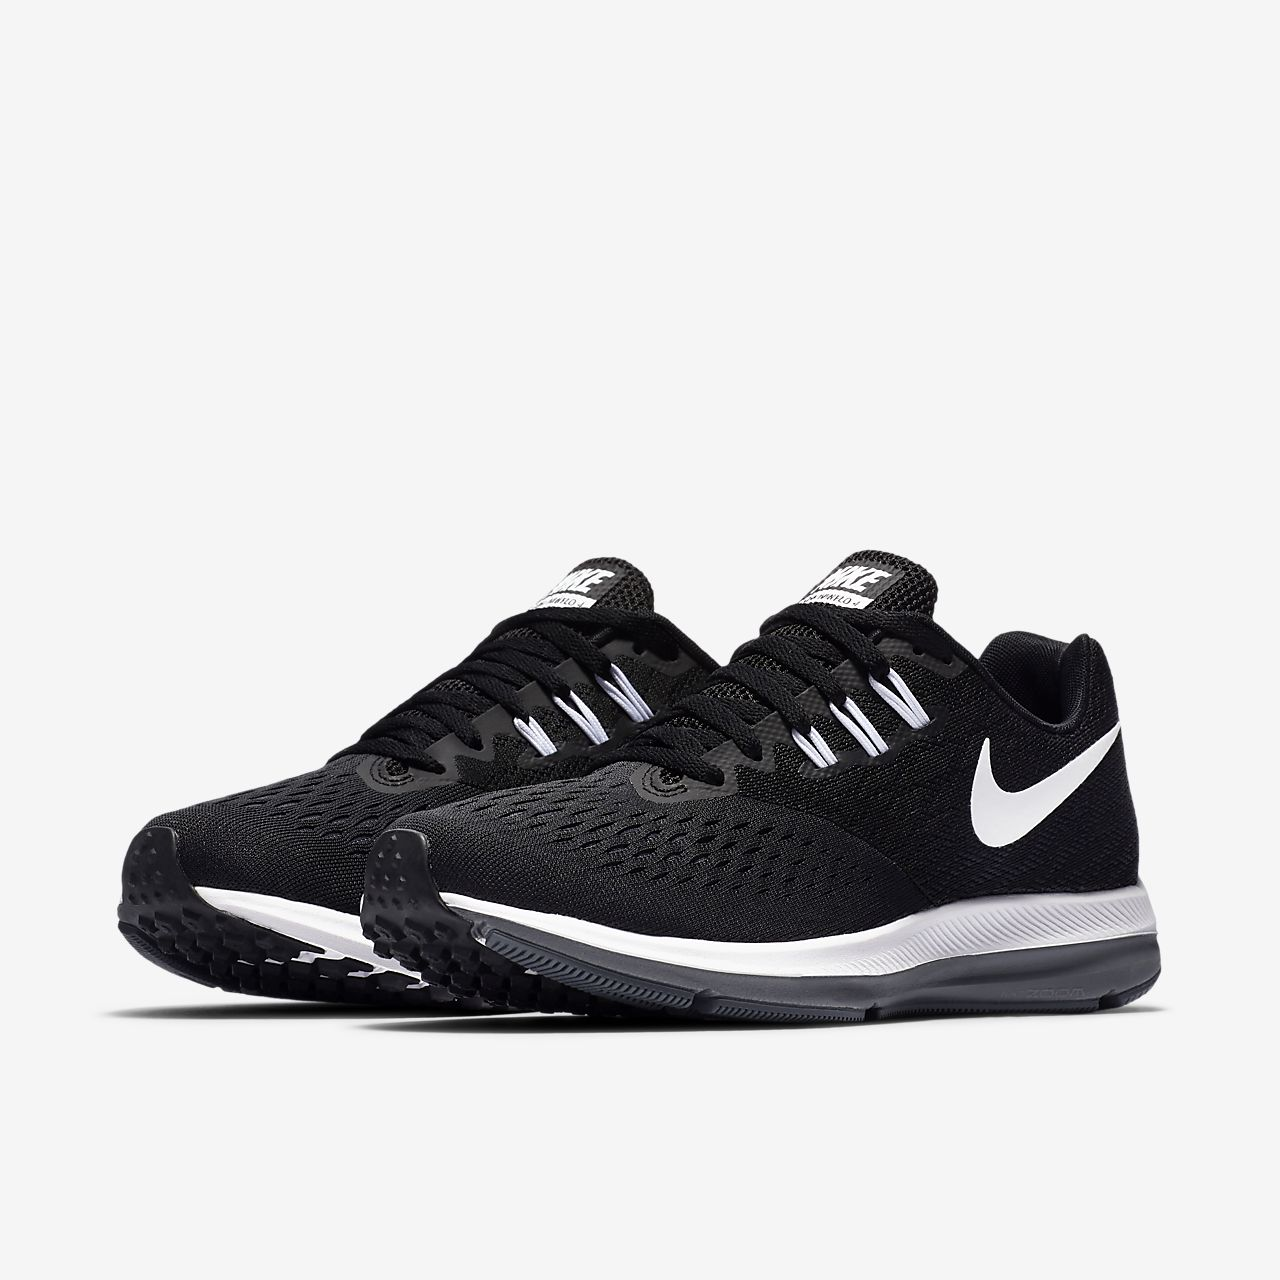 Chaussure de running Nike Zoom Winflo 4 pour Femme